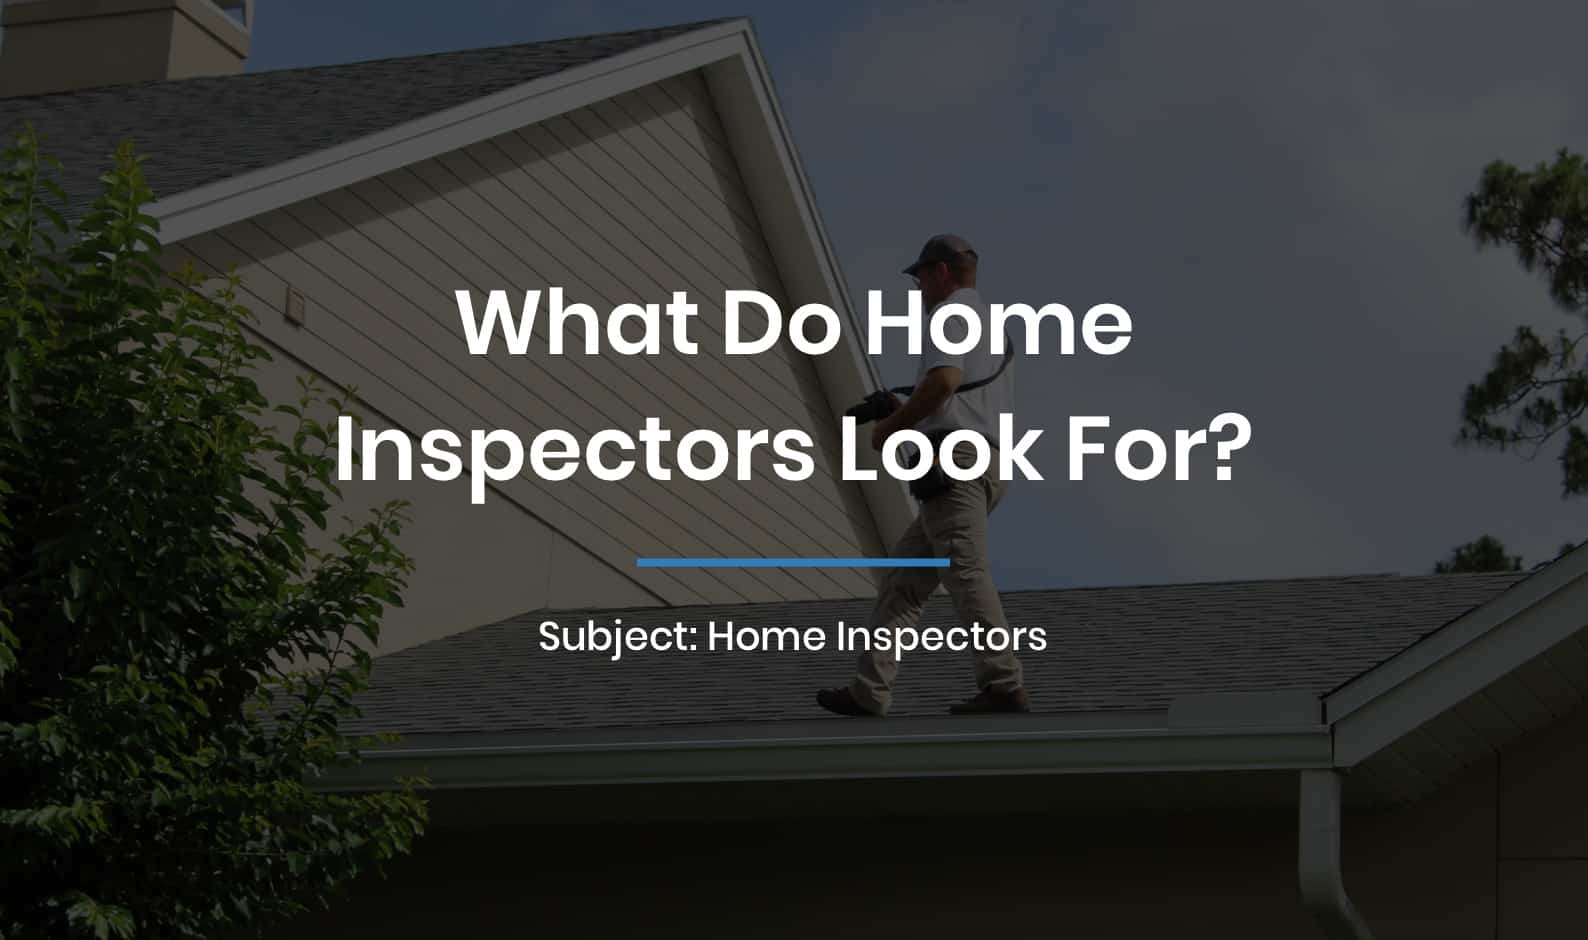 What do home inspectors look for?